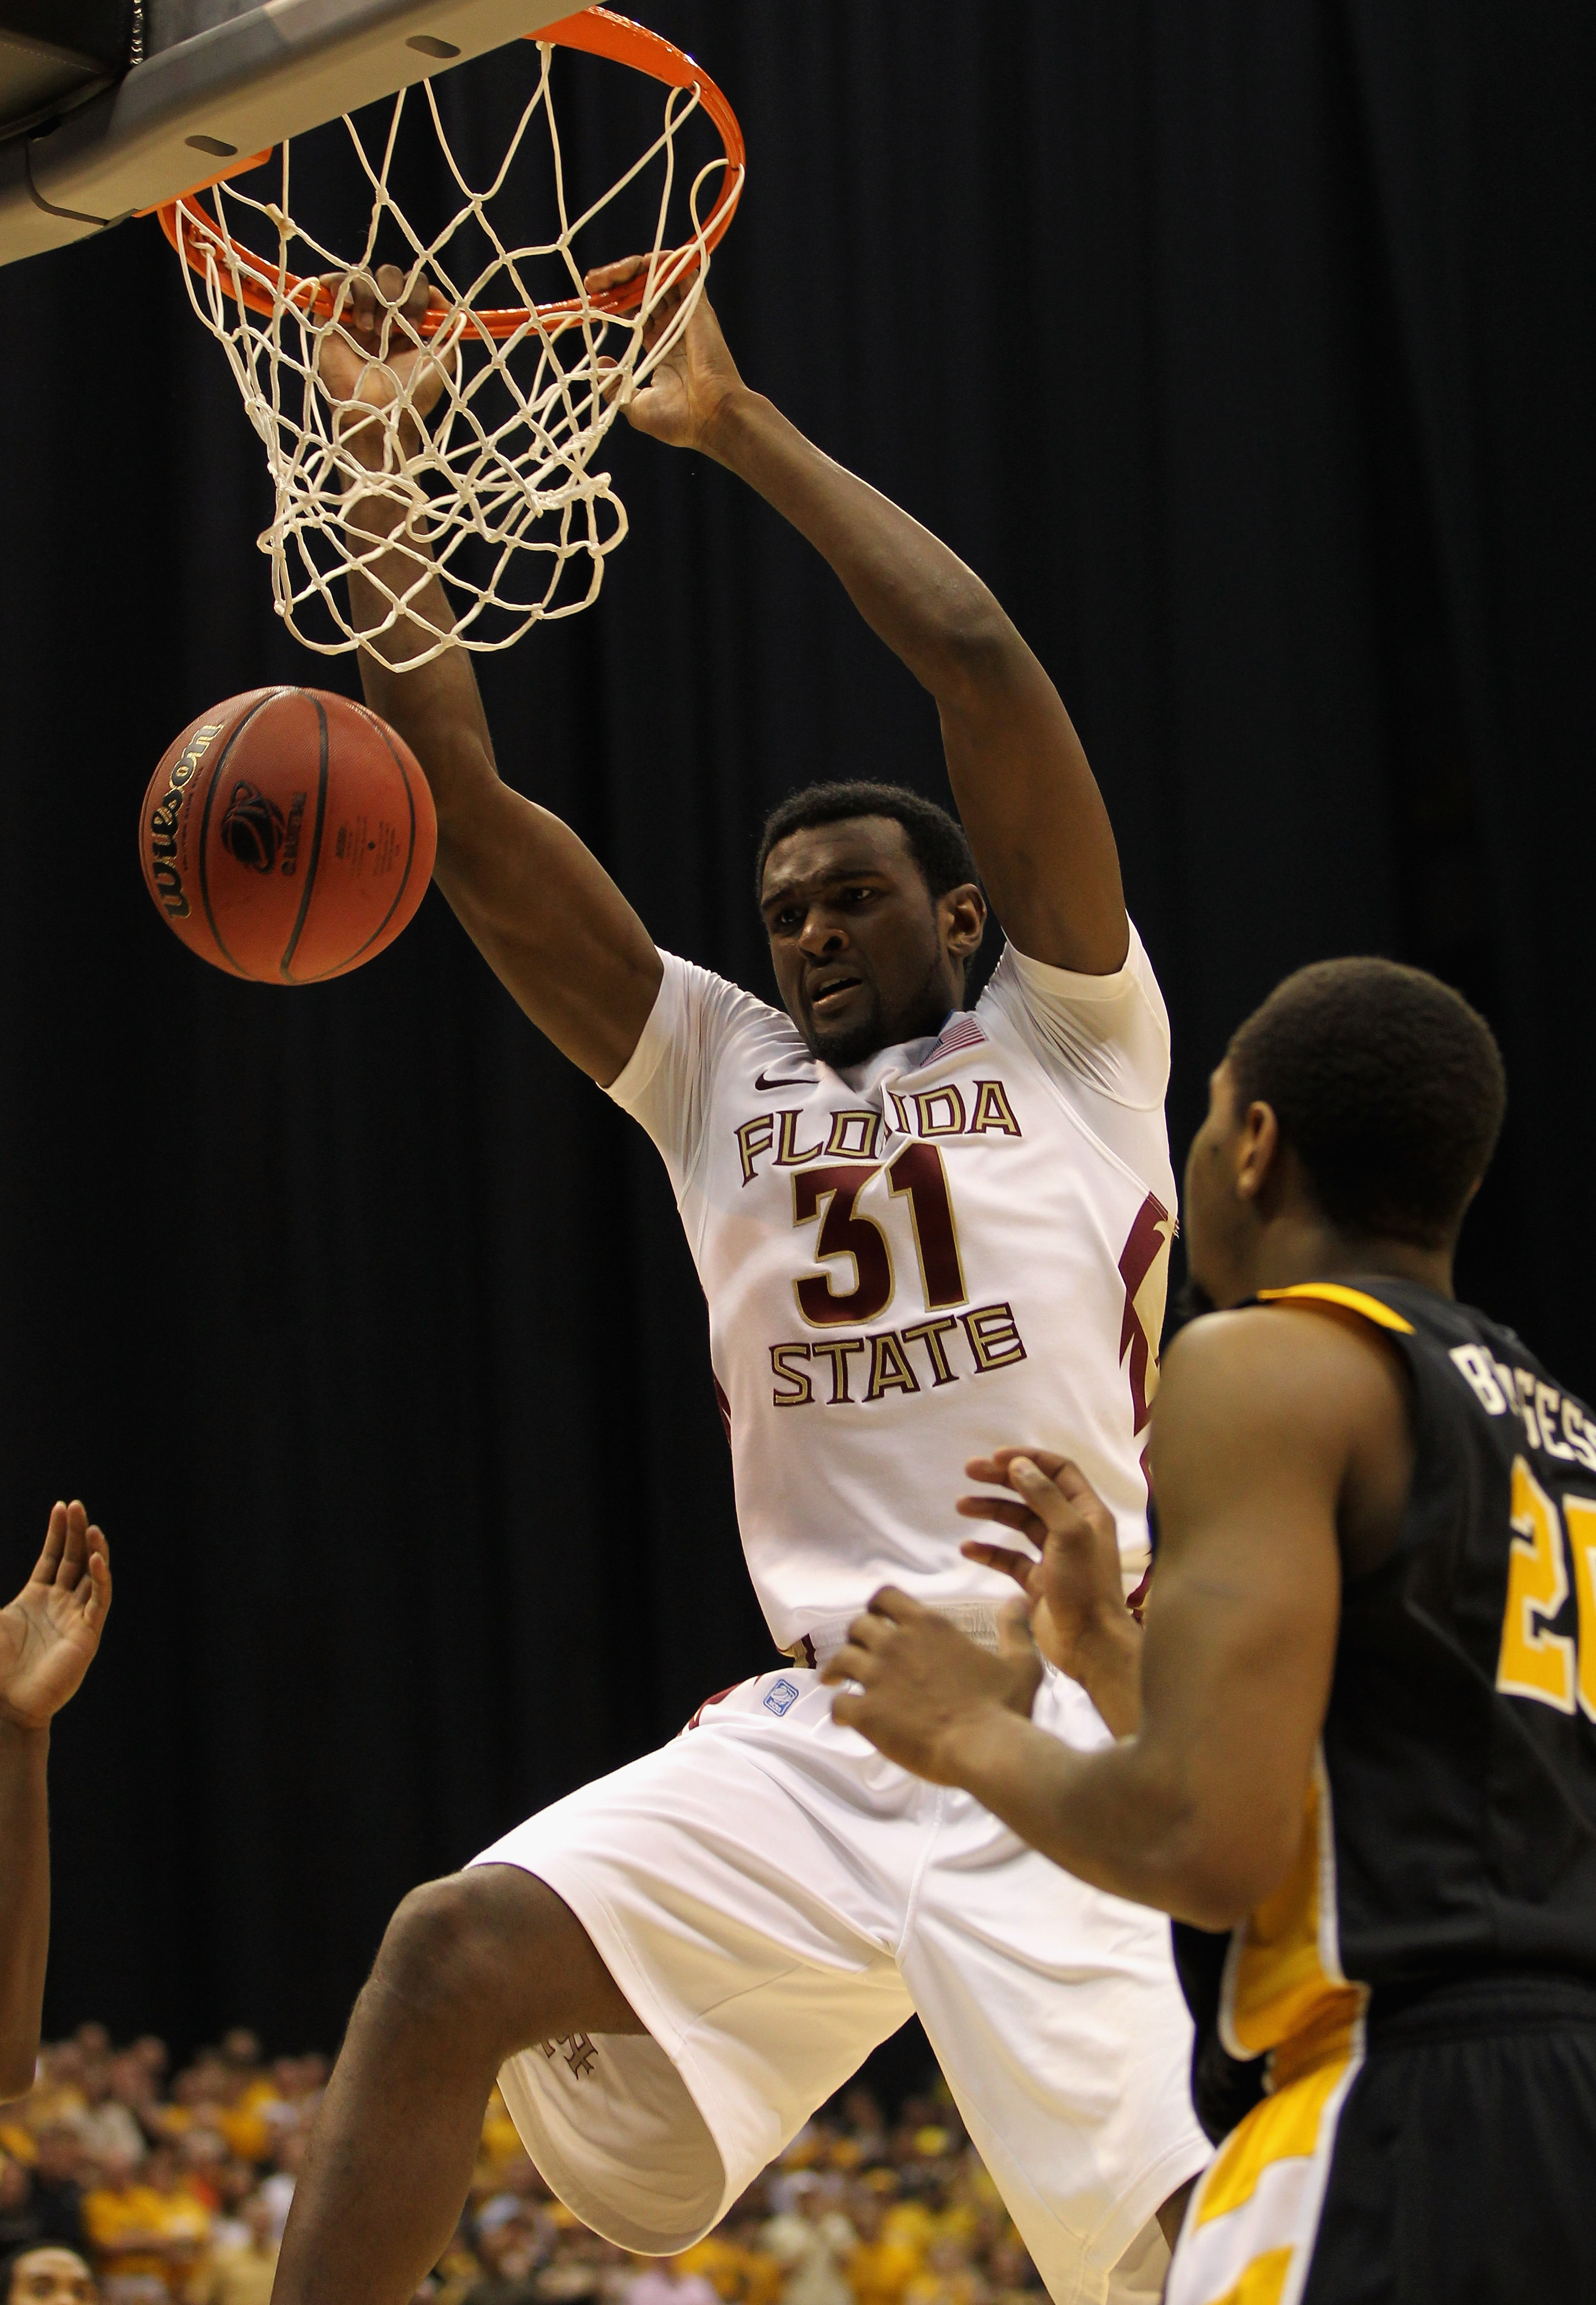 SAN ANTONIO, TX - MARCH 25:  Chris Singleton #31 of the Florida State Seminoles dunks against the Virginia Commonwealth Rams during the southwest regional of the 2011 NCAA men's basketball tournament at the Alamodome on March 25, 2011 in San Antonio, Texa